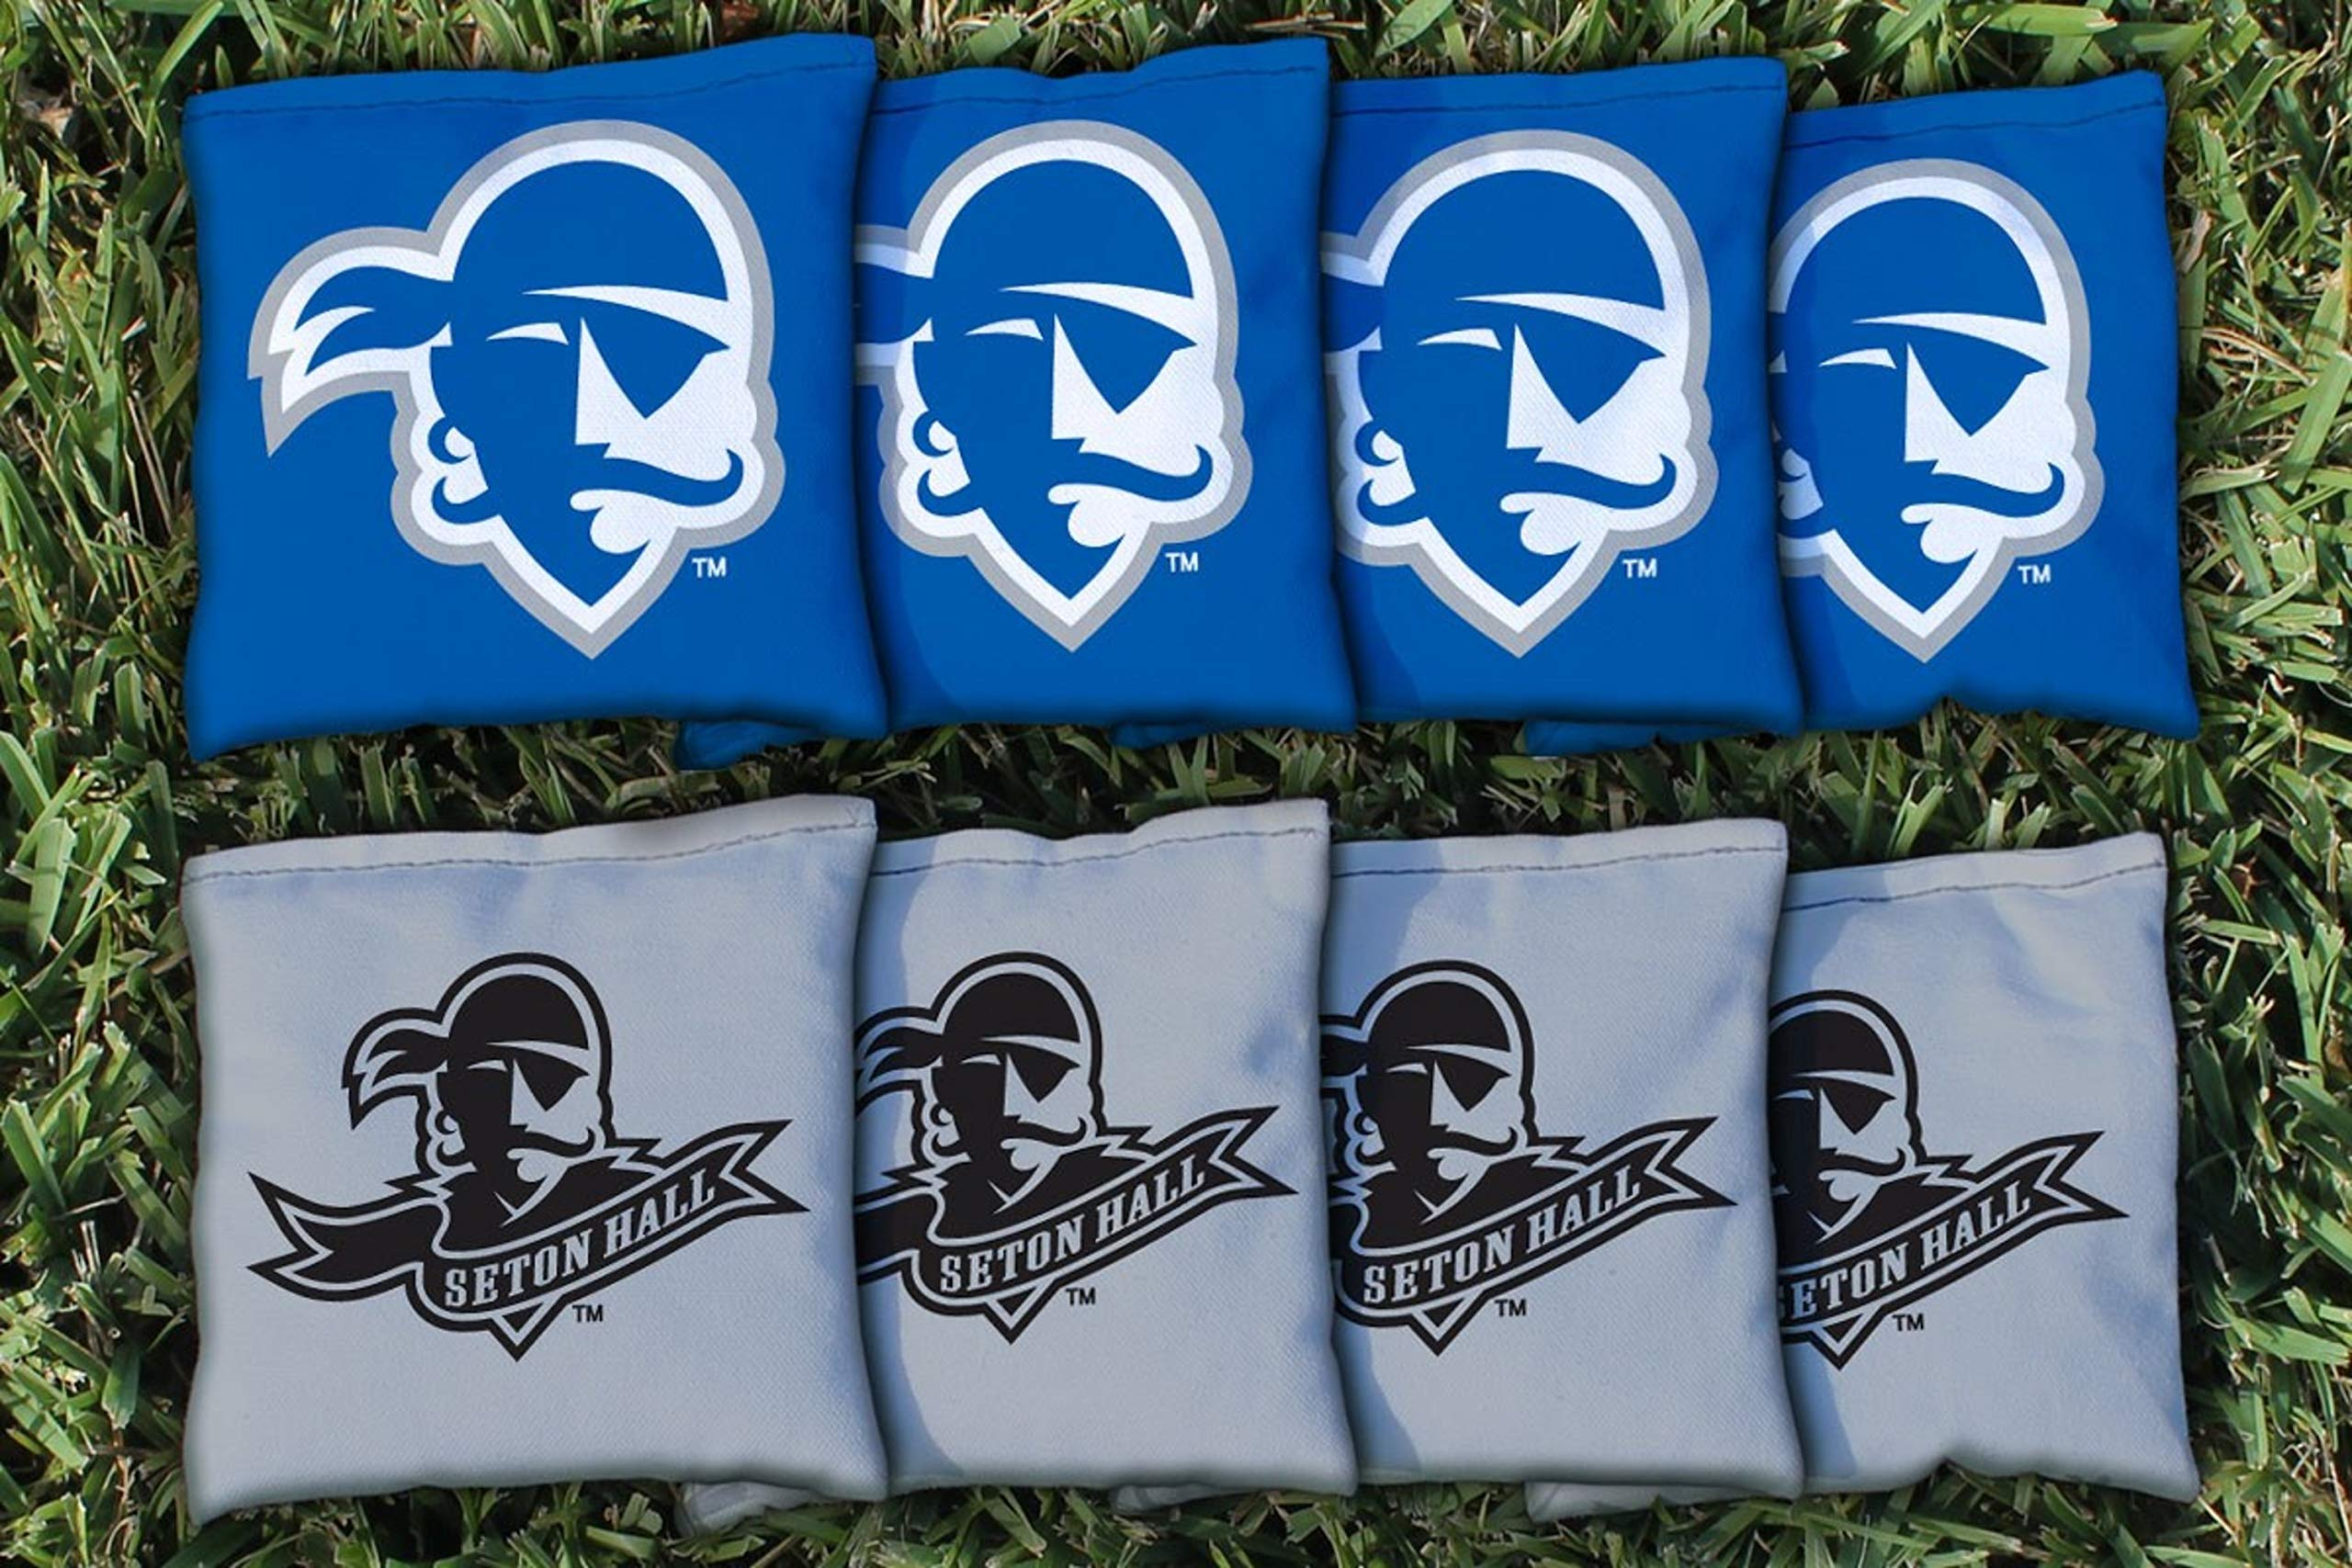 Victory Tailgate NCAA Collegiate Regulation Cornhole Game Bag Set (8 Bags Included, Corn-Filled) - Seton Hall Pirates by Victory Tailgate